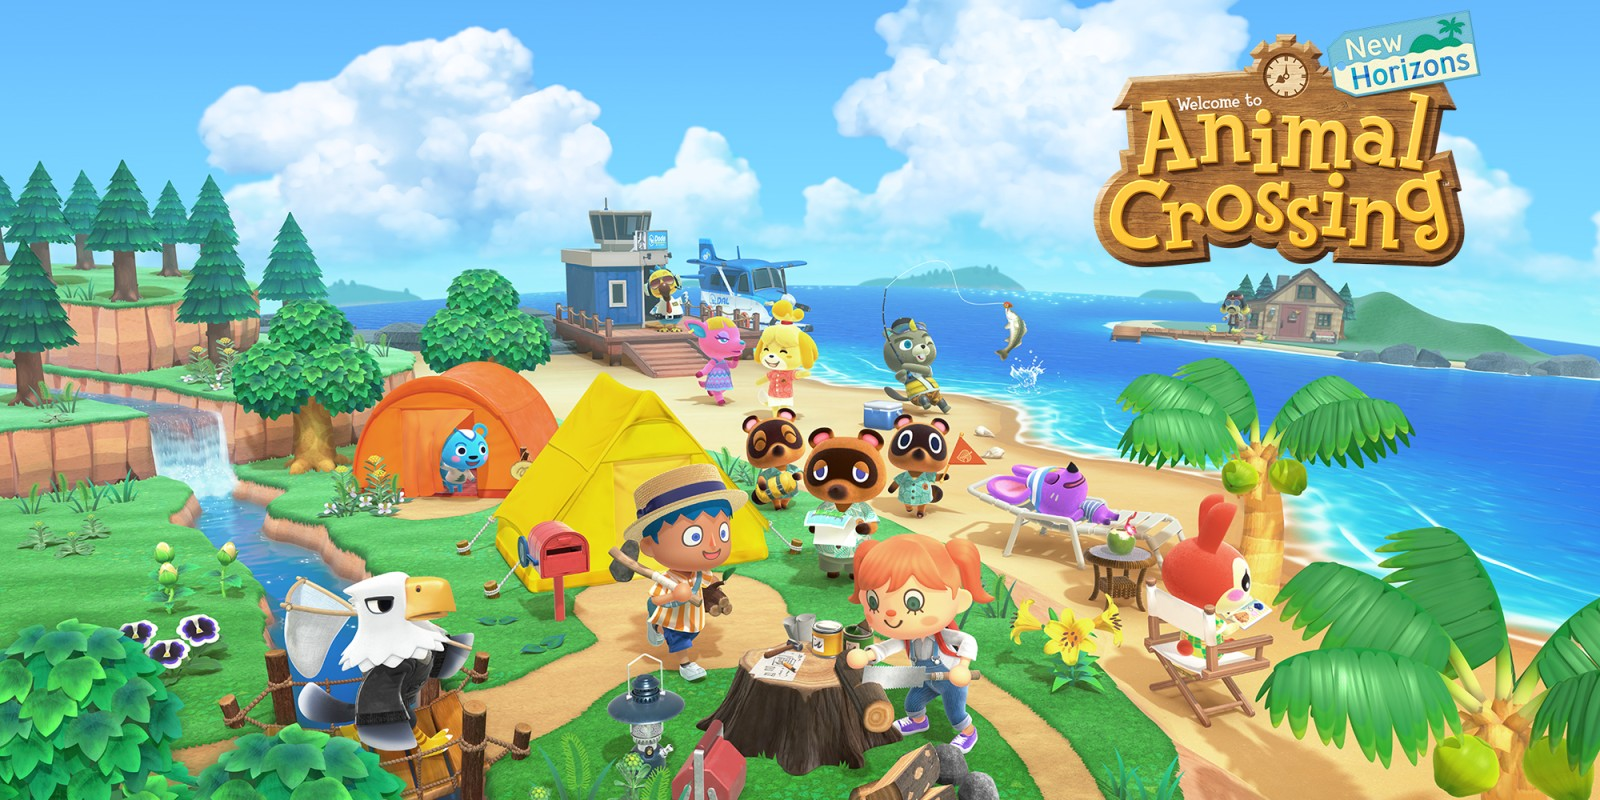 (c) Nintendo Europe https://cdn02.nintendo-europe.com/media/images/10_share_images/games_15/nintendo_switch_4/H2x1_NSwitch_AnimalCrossingNewHorizons_image1600w.jpg